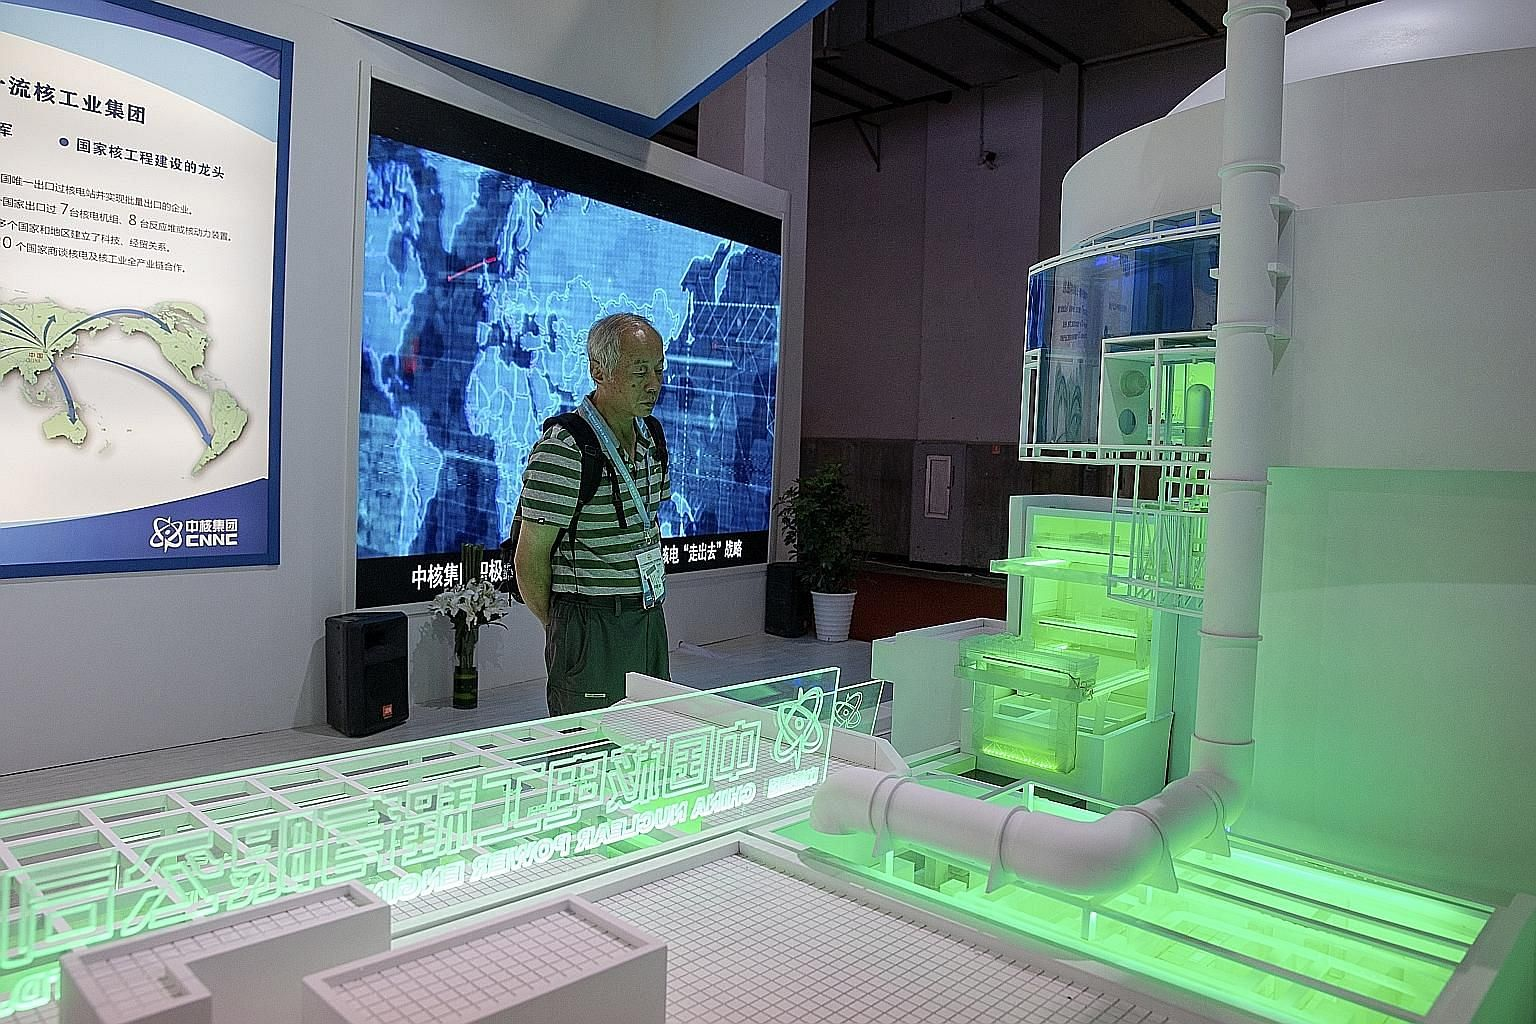 China held the International Exhibition on Nuclear Power Industry in Beijing last month. The country has been an established nuclear weapons state since the early 1960s.